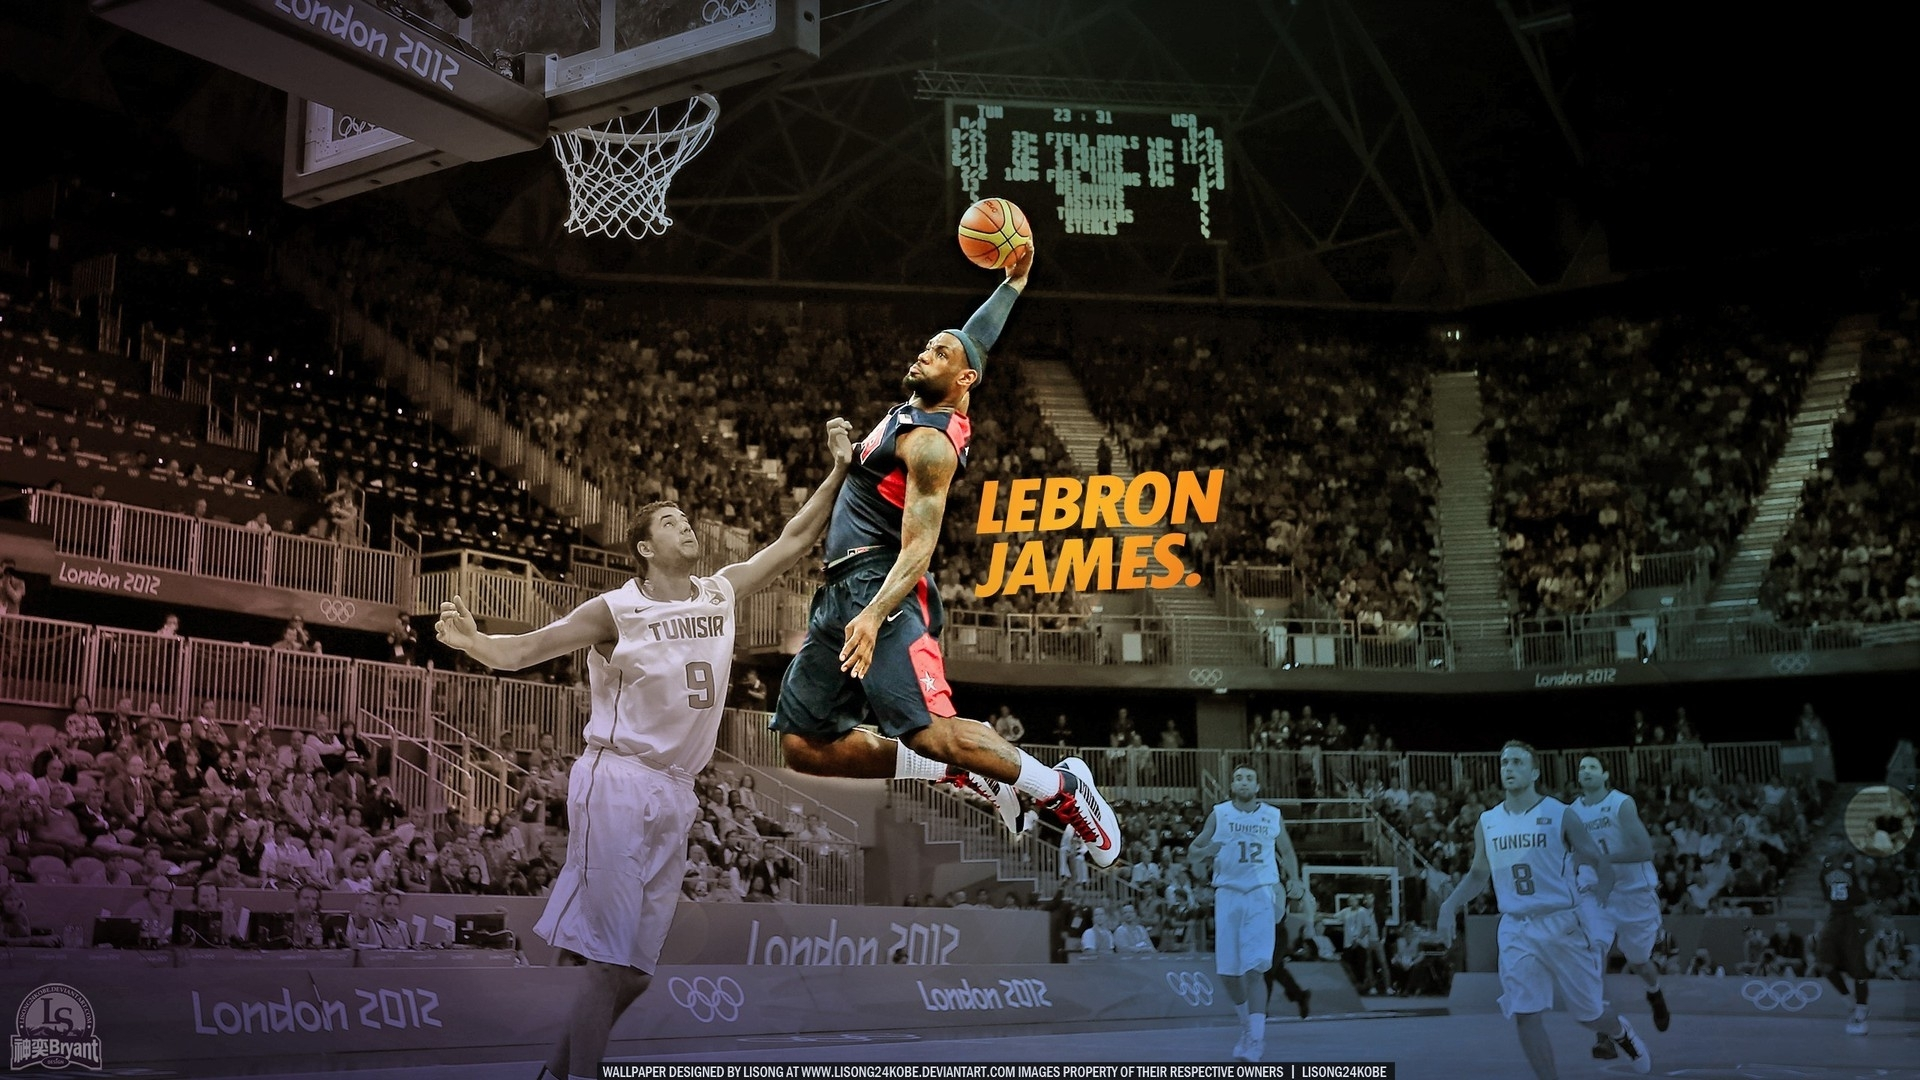 nba lebron james dunk joueur de basket papier peint | allwallpaper